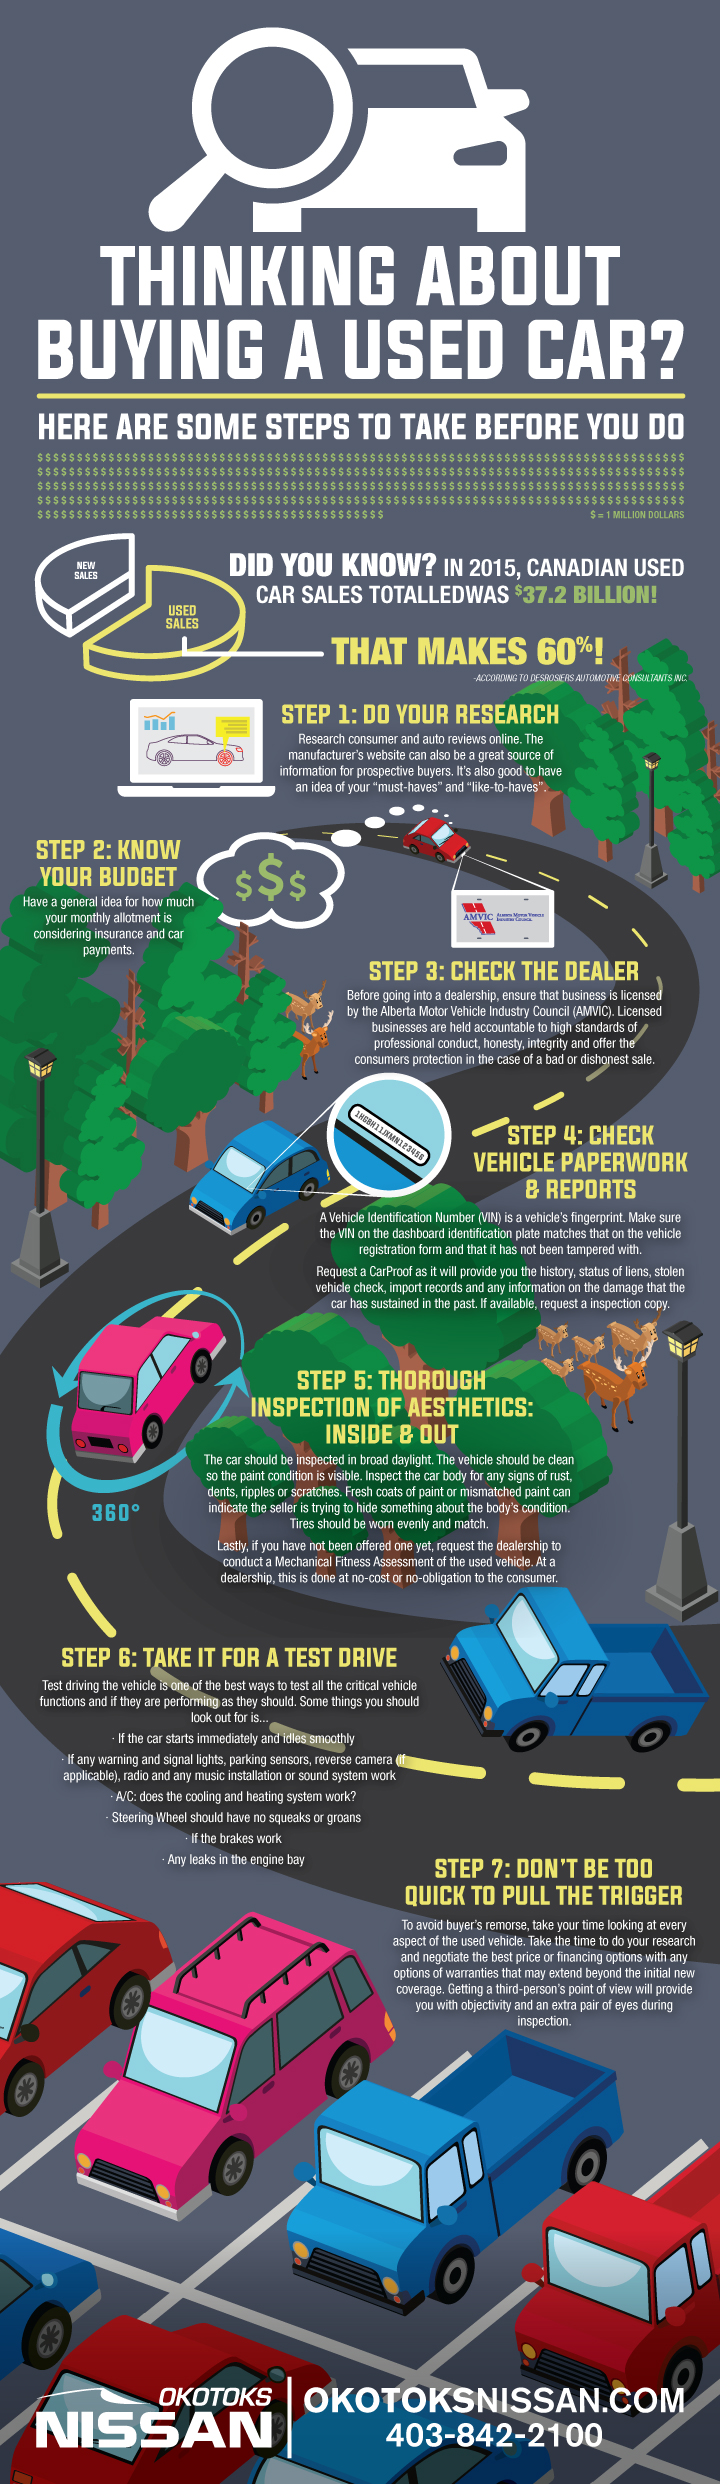 steps-to-take-before-buying-a-used-car-infographic-on